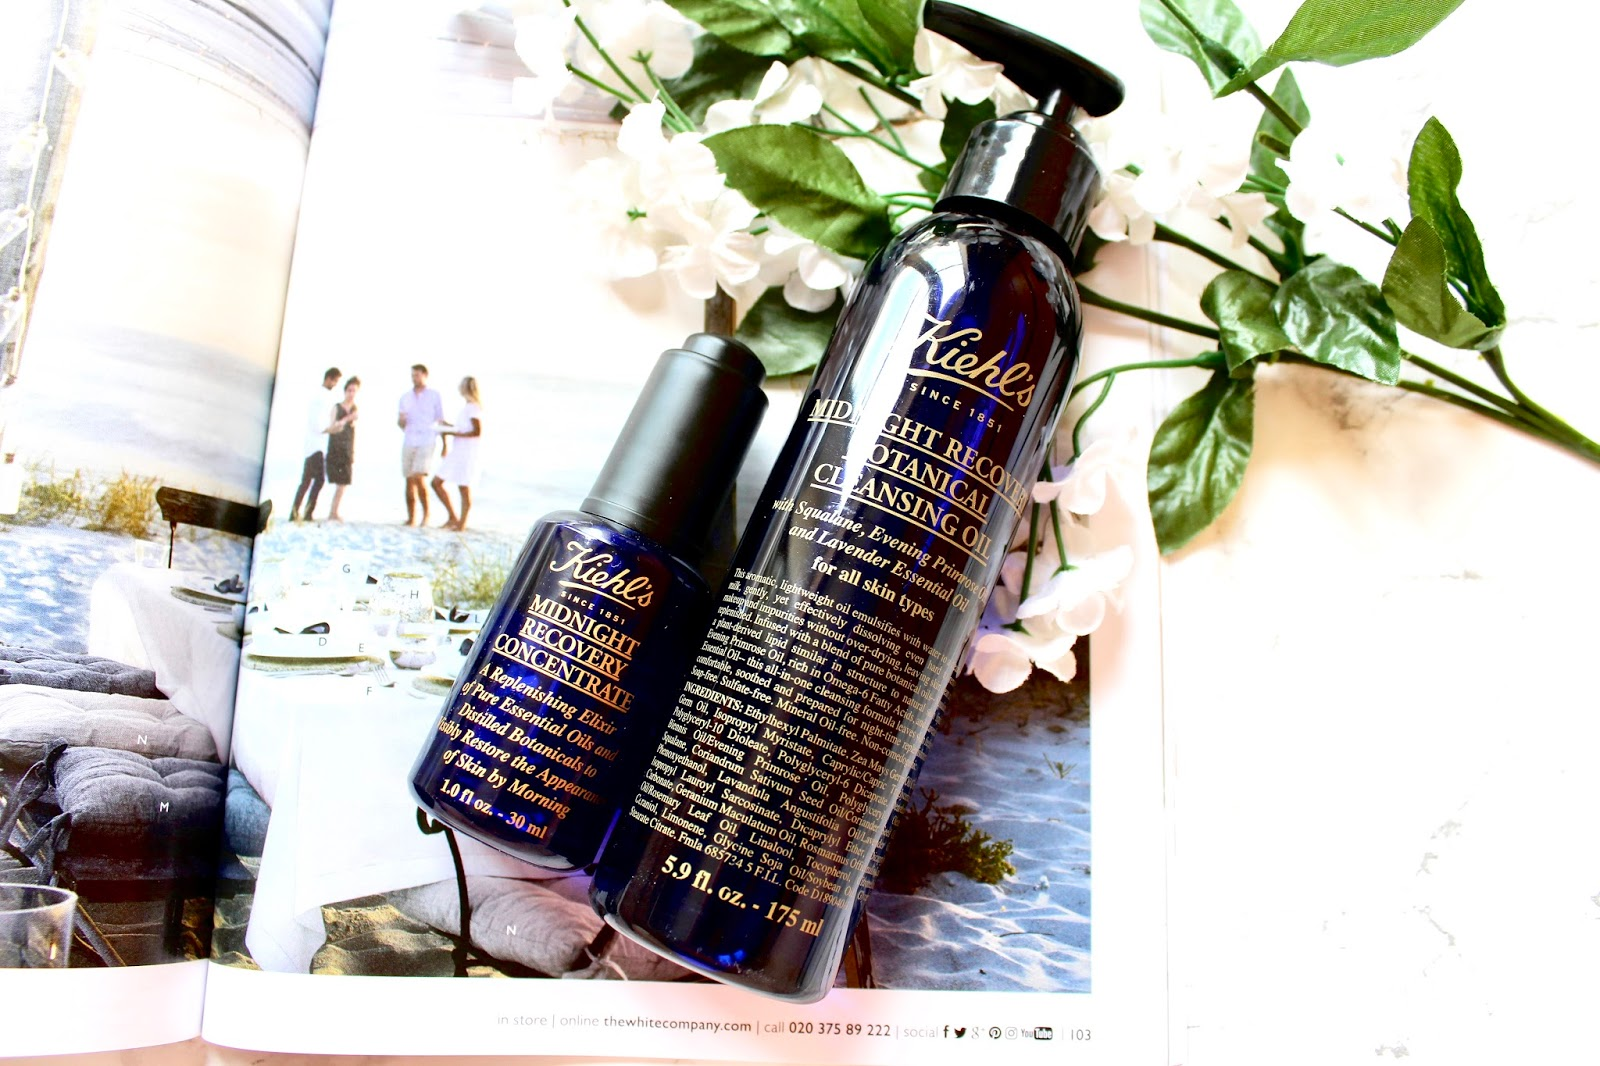 Kiehl's Midnight Recovery Oil and Concentrate